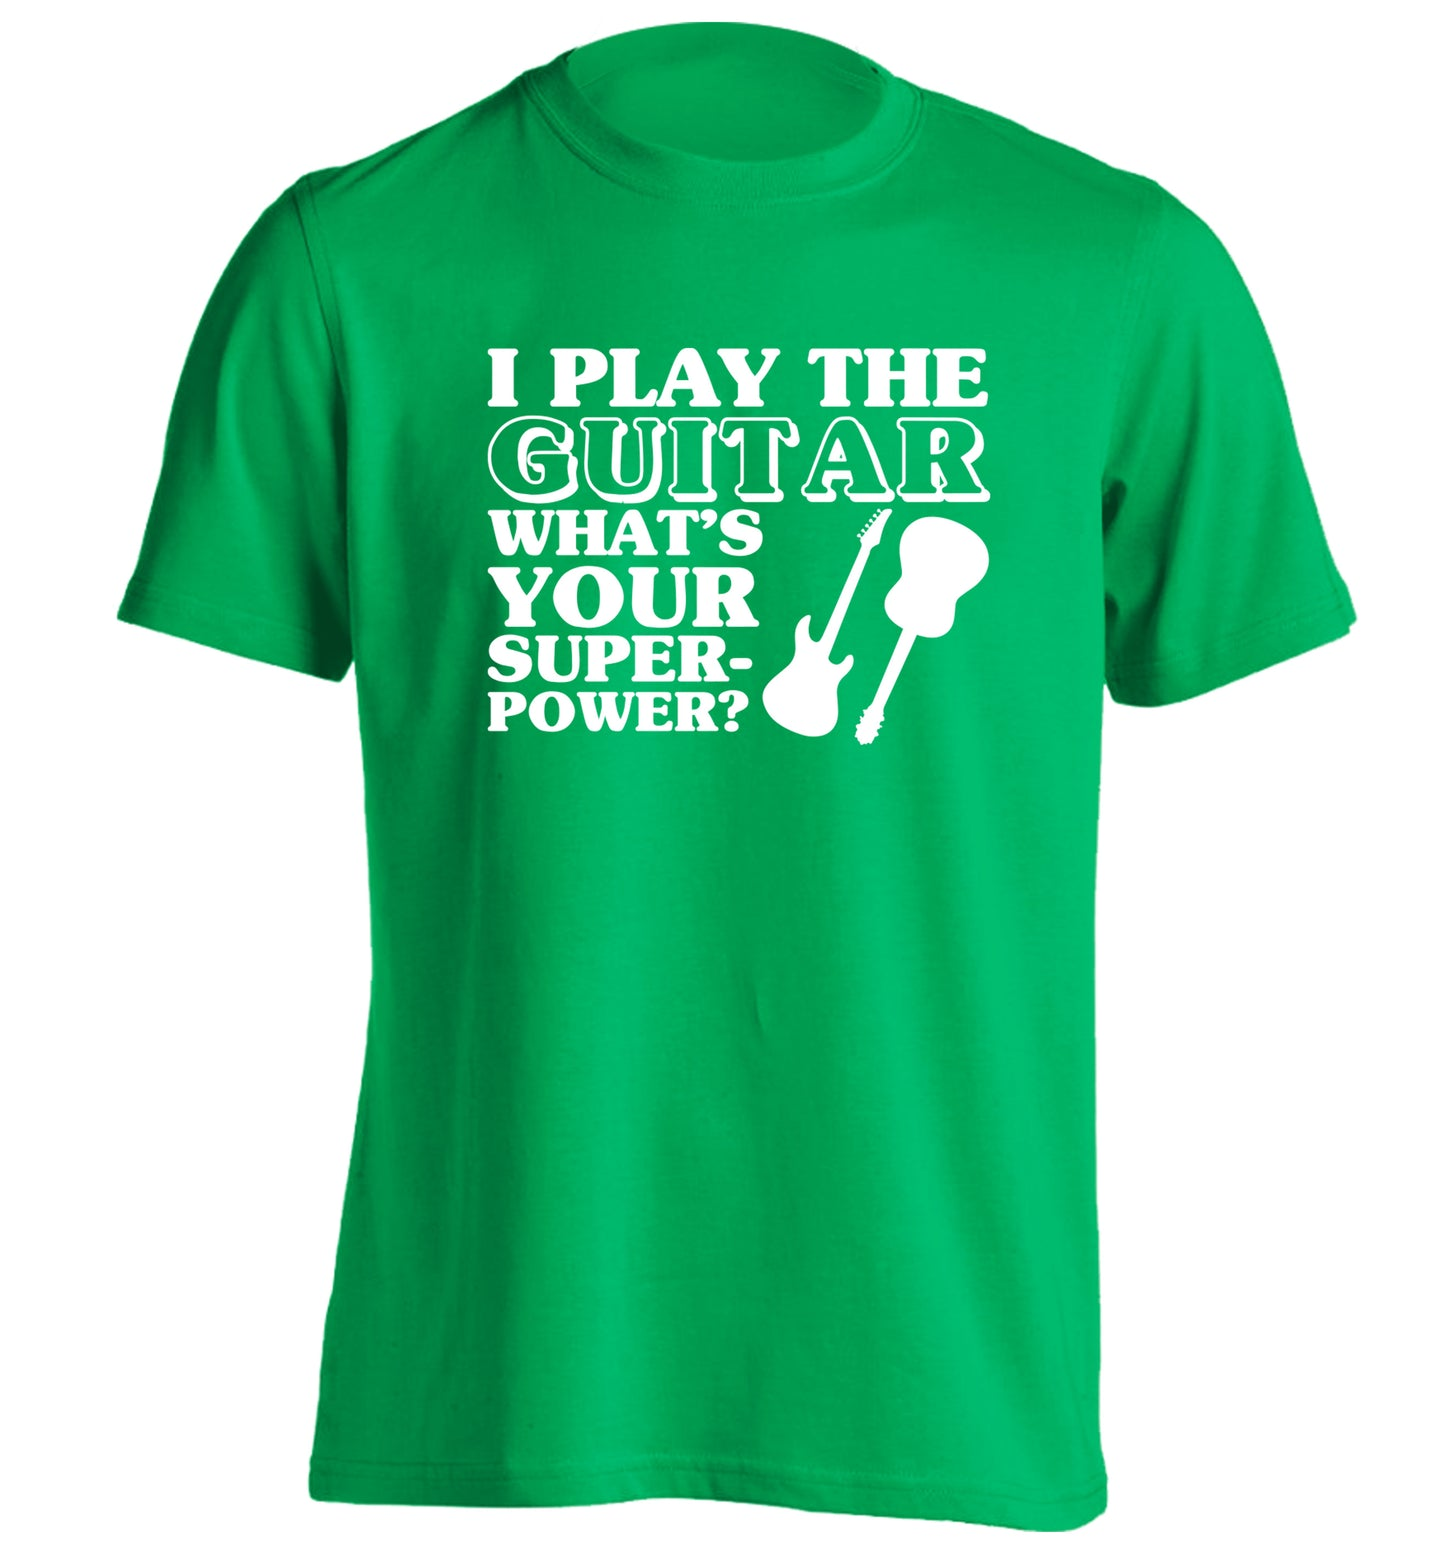 I play the guitar what's your superpower? adults unisex green Tshirt small